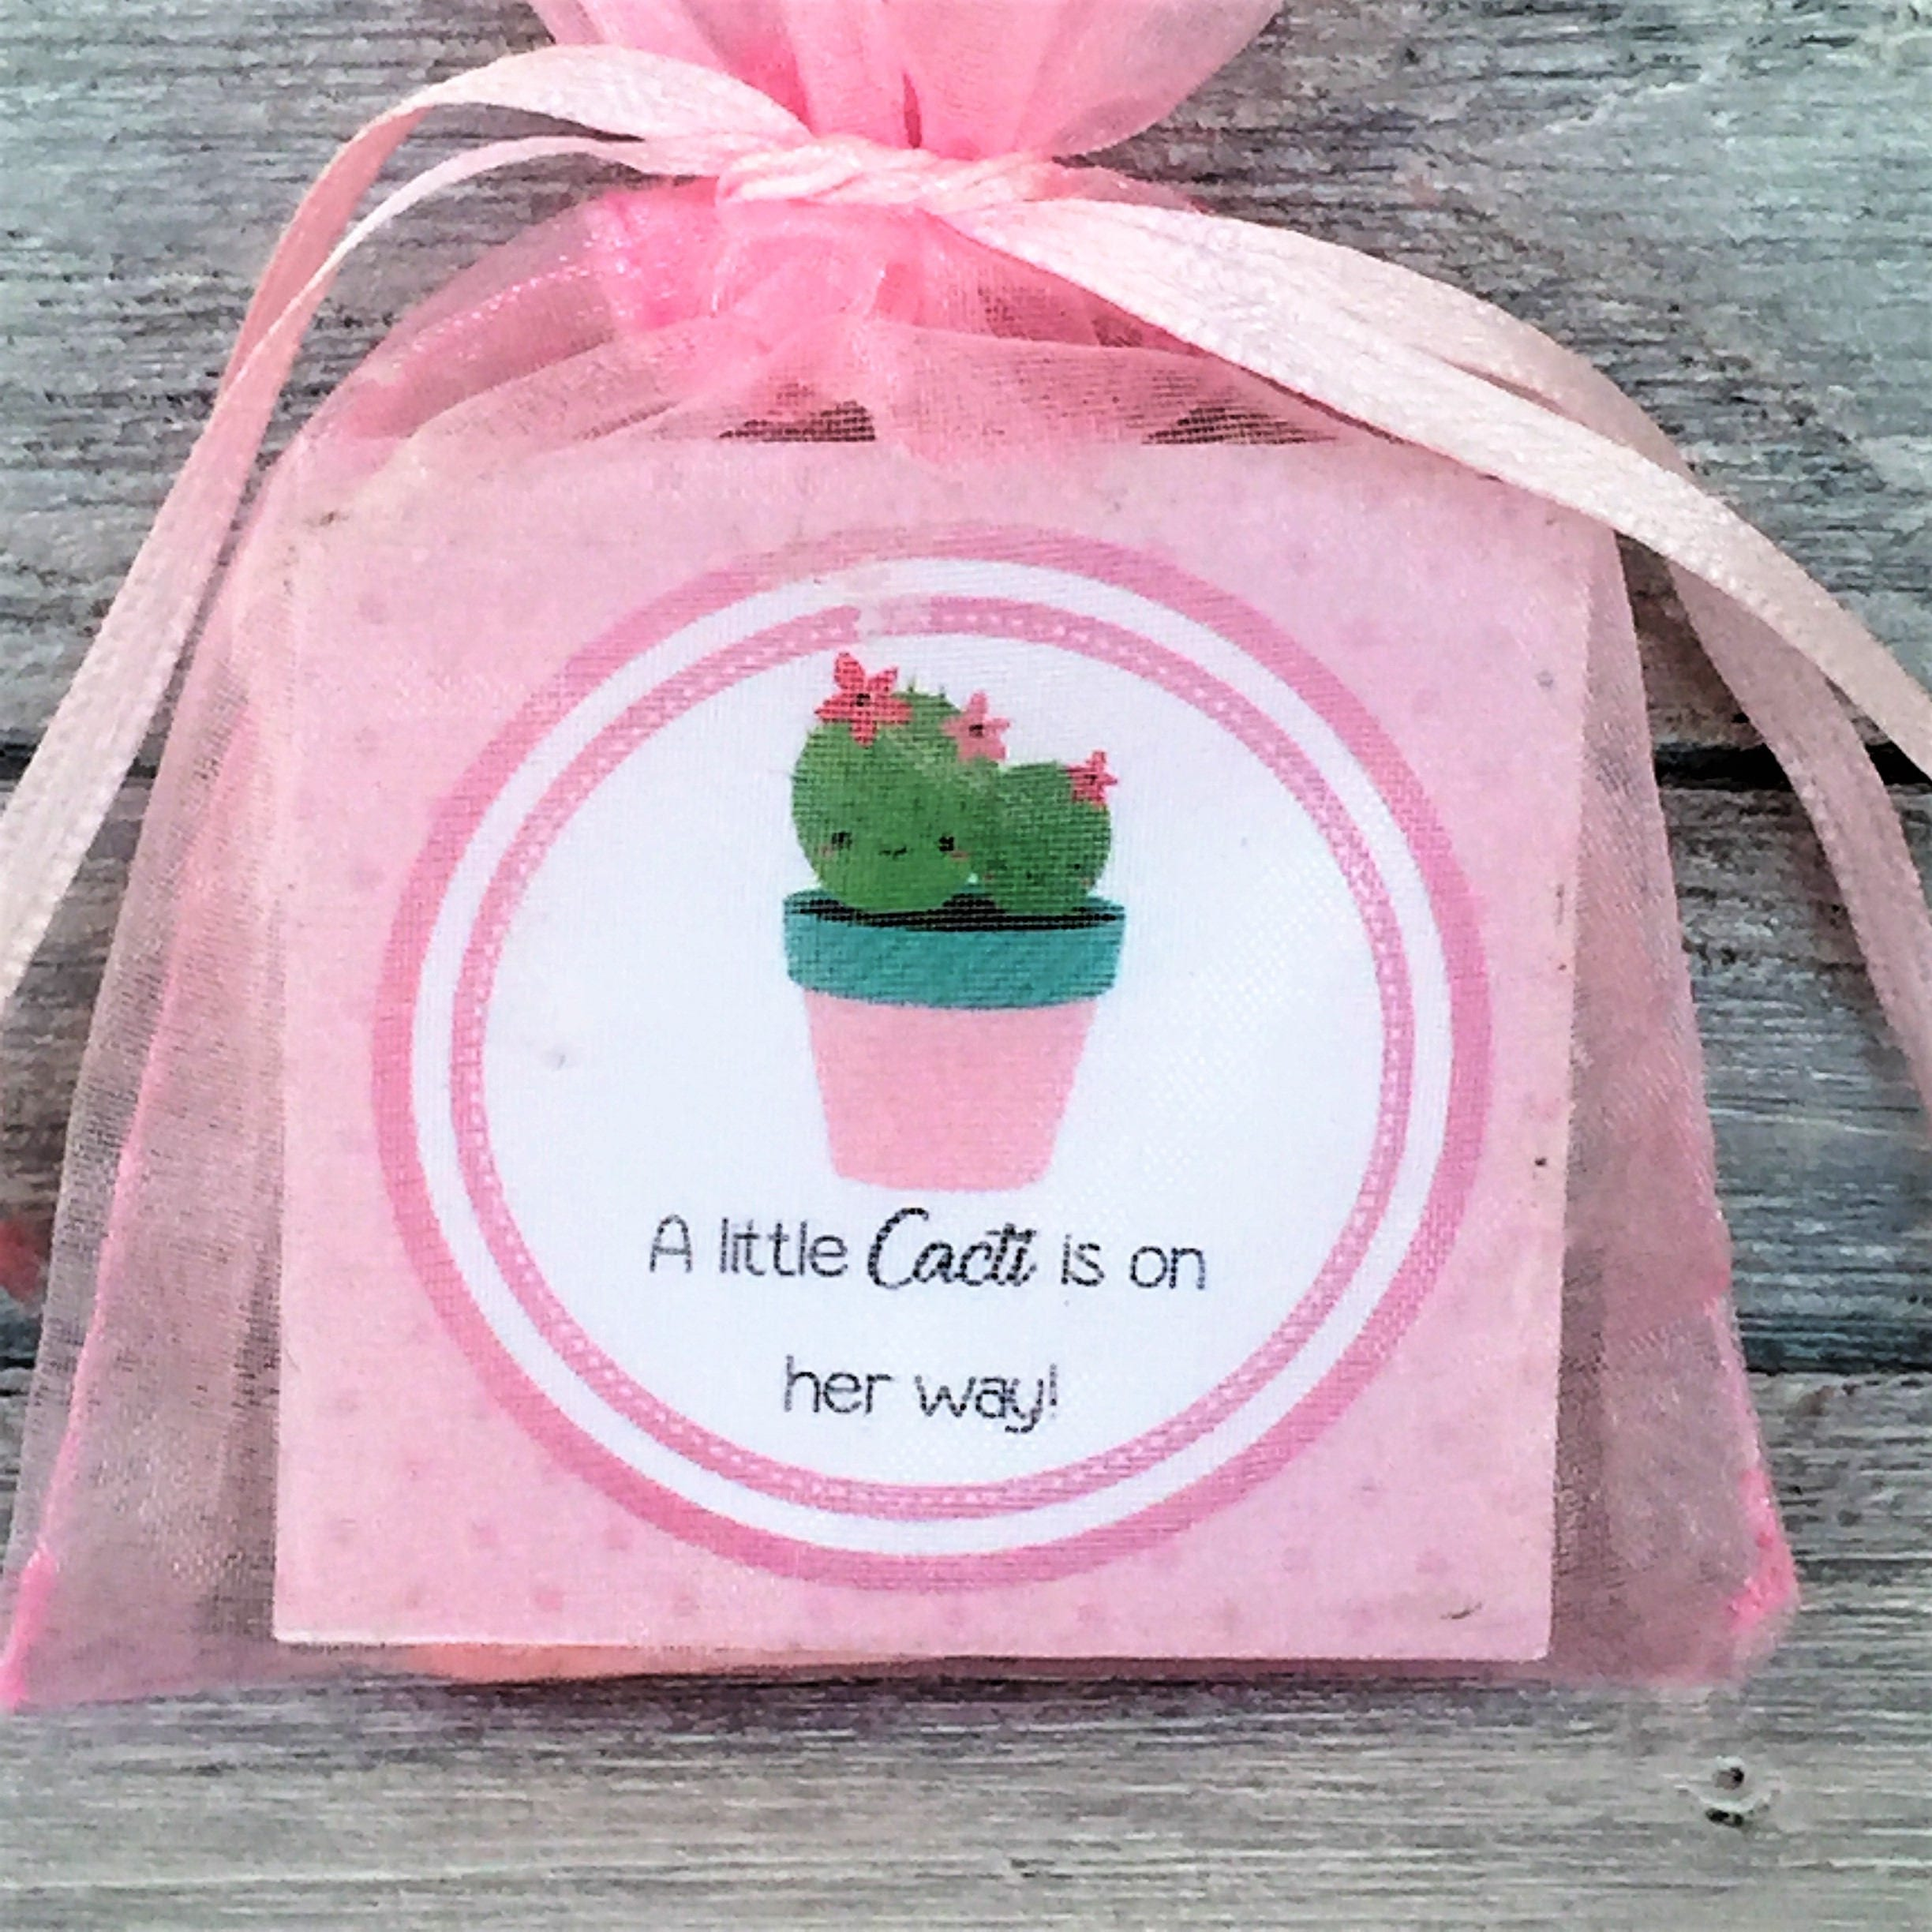 Cactus Soap Favors: Baby Shower Favors Birthday Favors Baby | Etsy